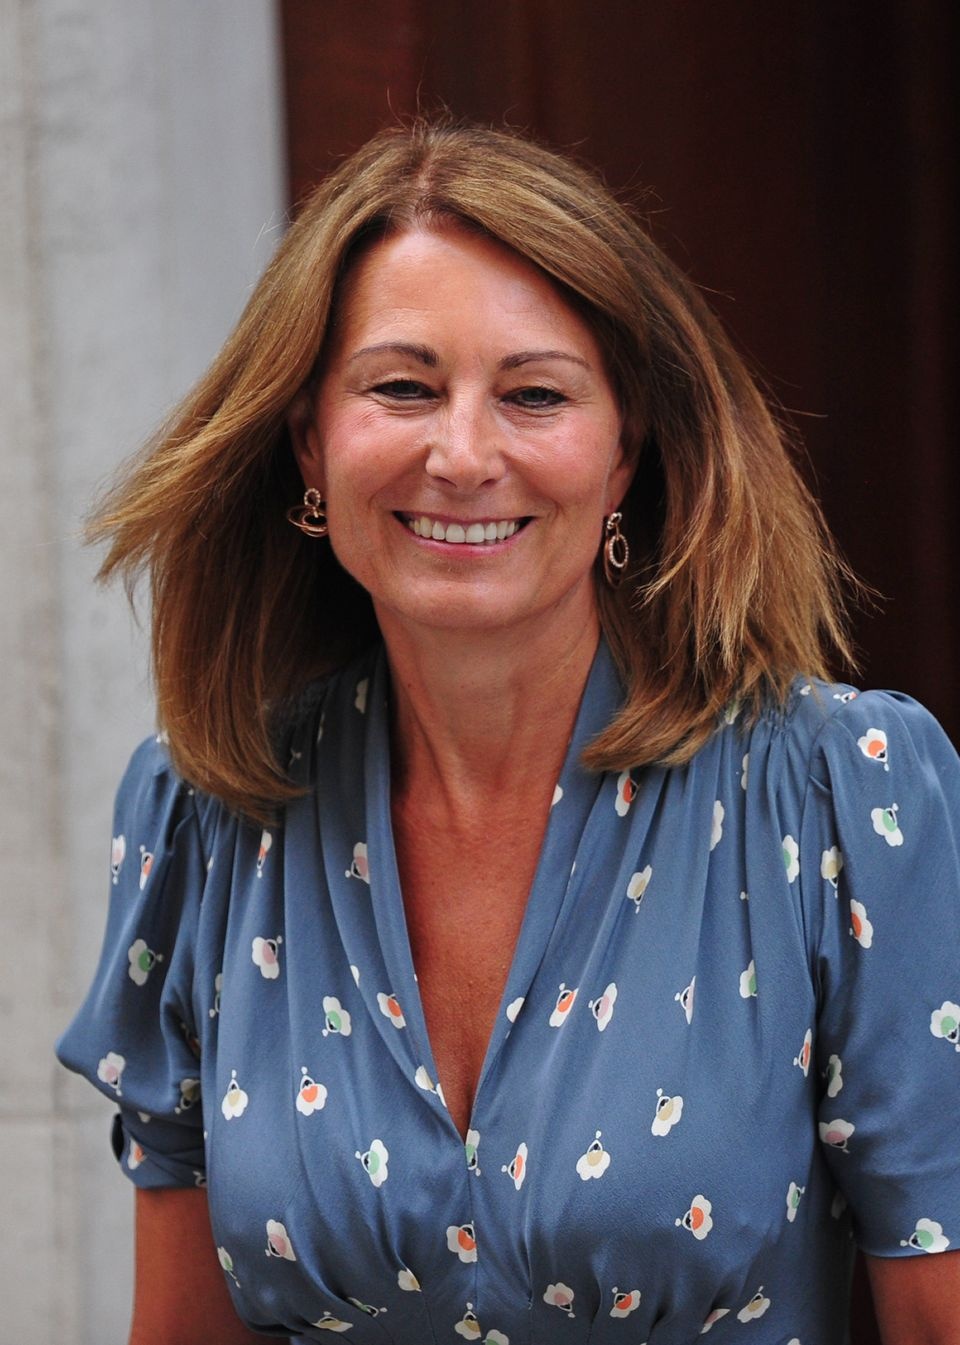 "At<a href=""http://thepeerage.com/p20097.htm#i200962"" target=""_blank""> 60, Carole Middleton has an incredible</a> figure that"